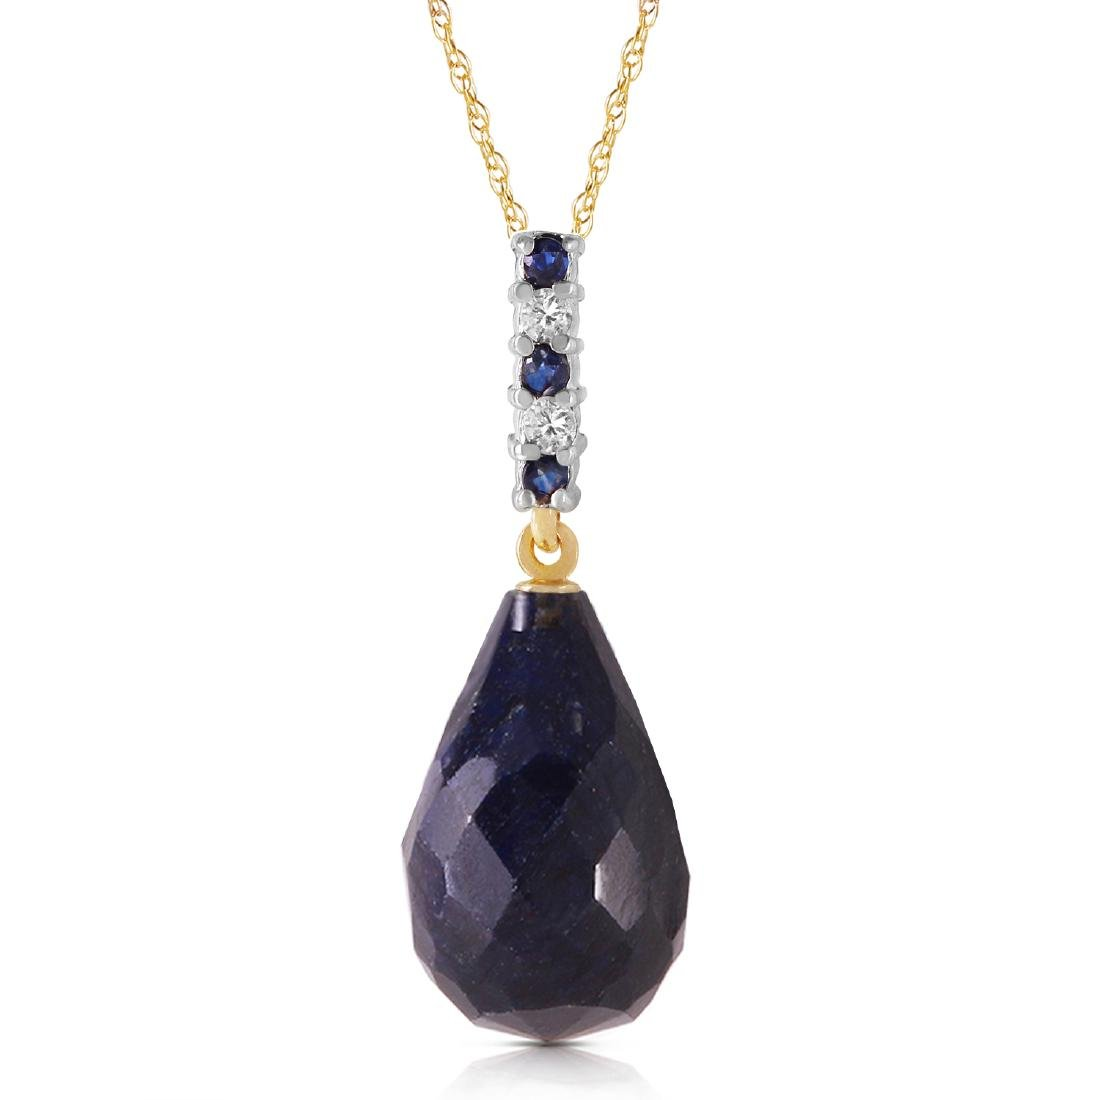 Genuine 8.95 ctw Sapphire & Diamond Necklace Jewelry